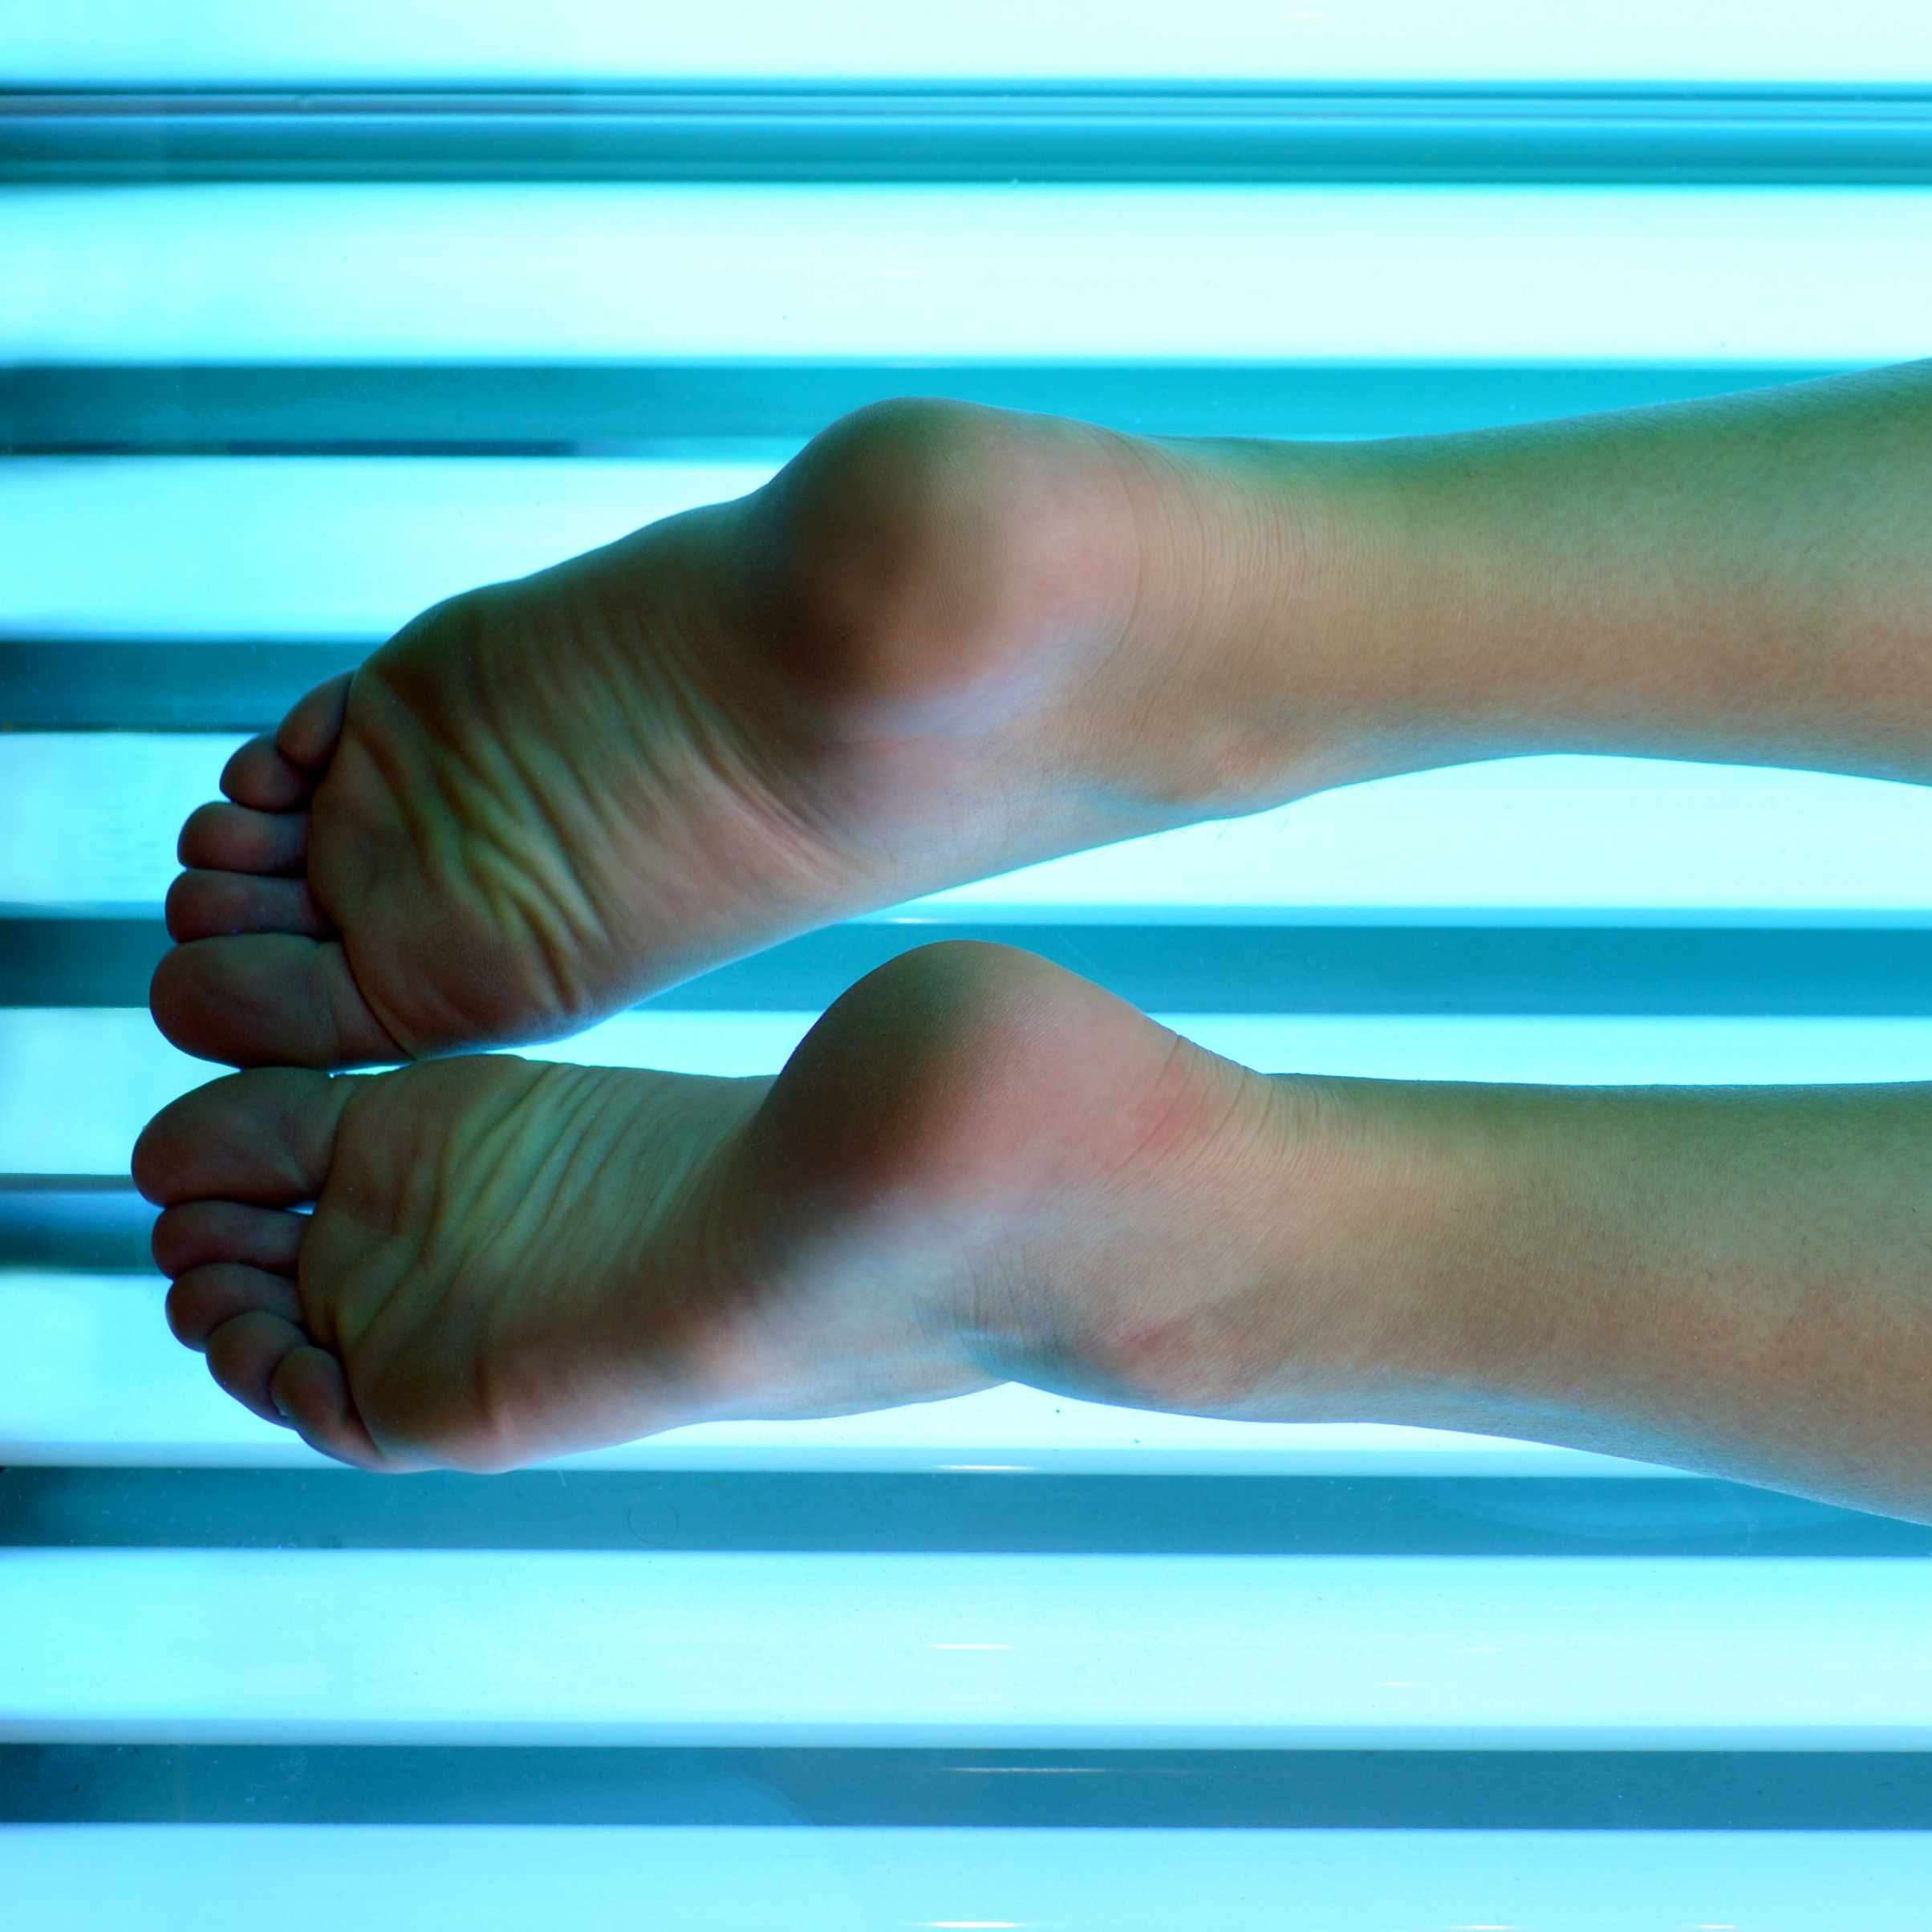 a person's legs resting inside a tanning bed with bright lights on